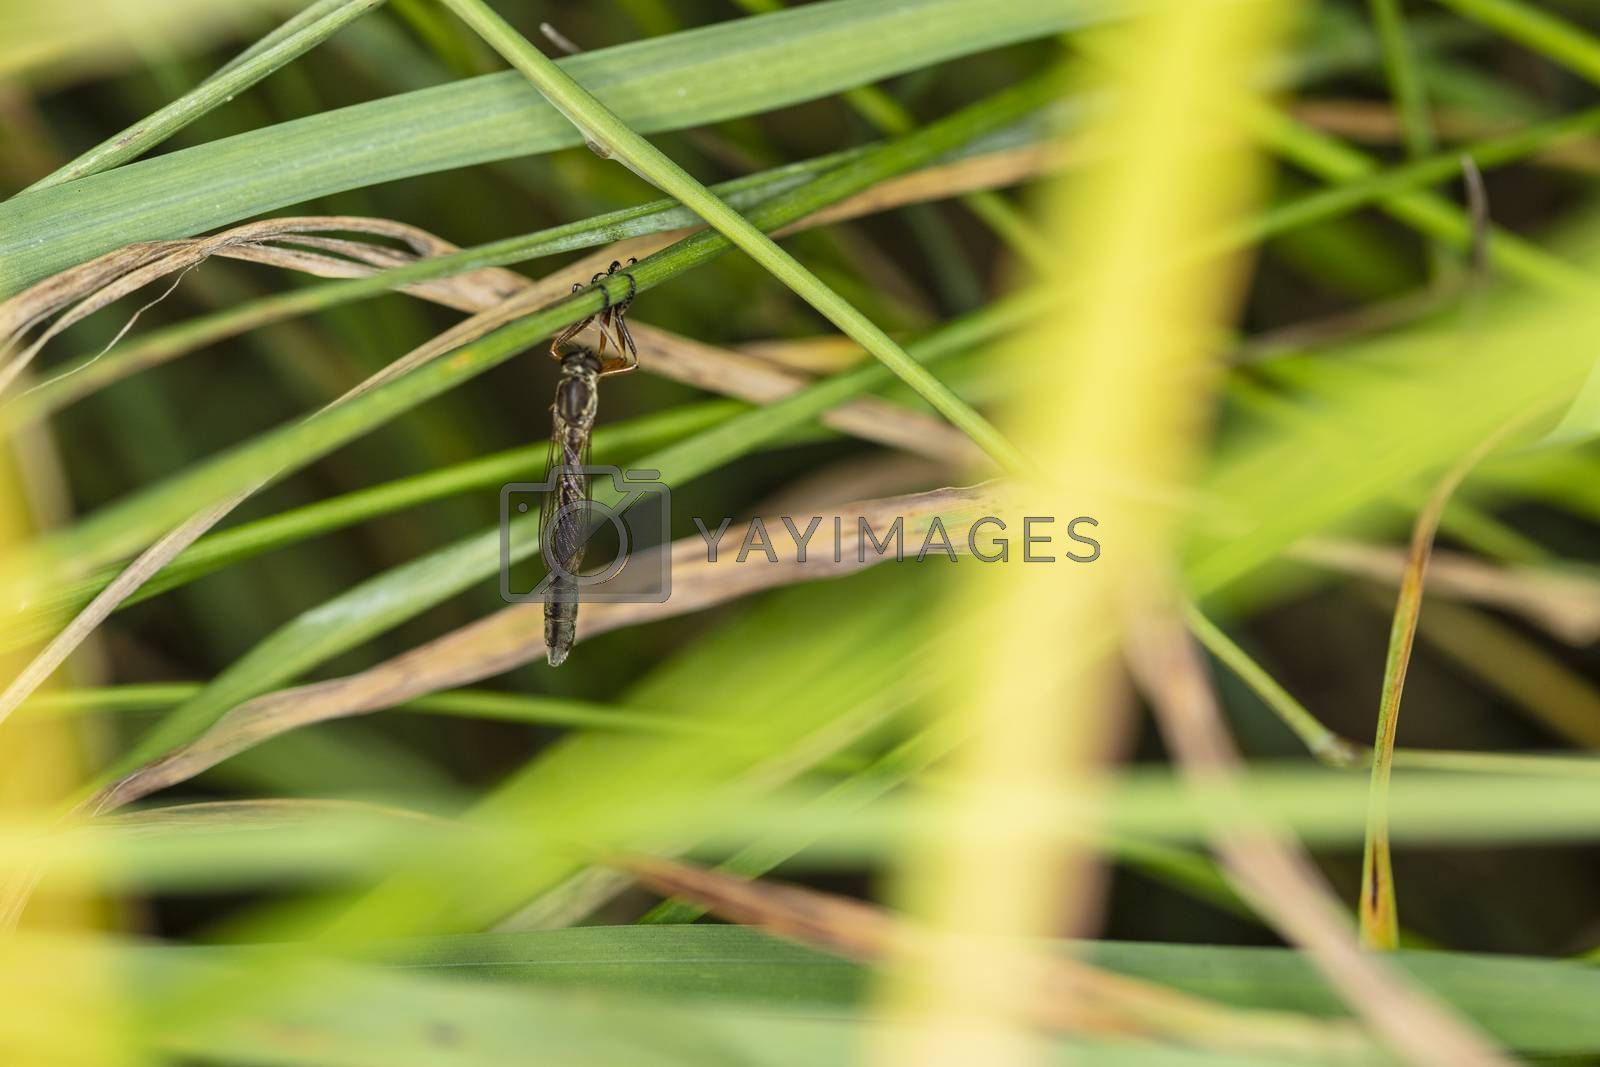 large mosquito sits hidden in the grass